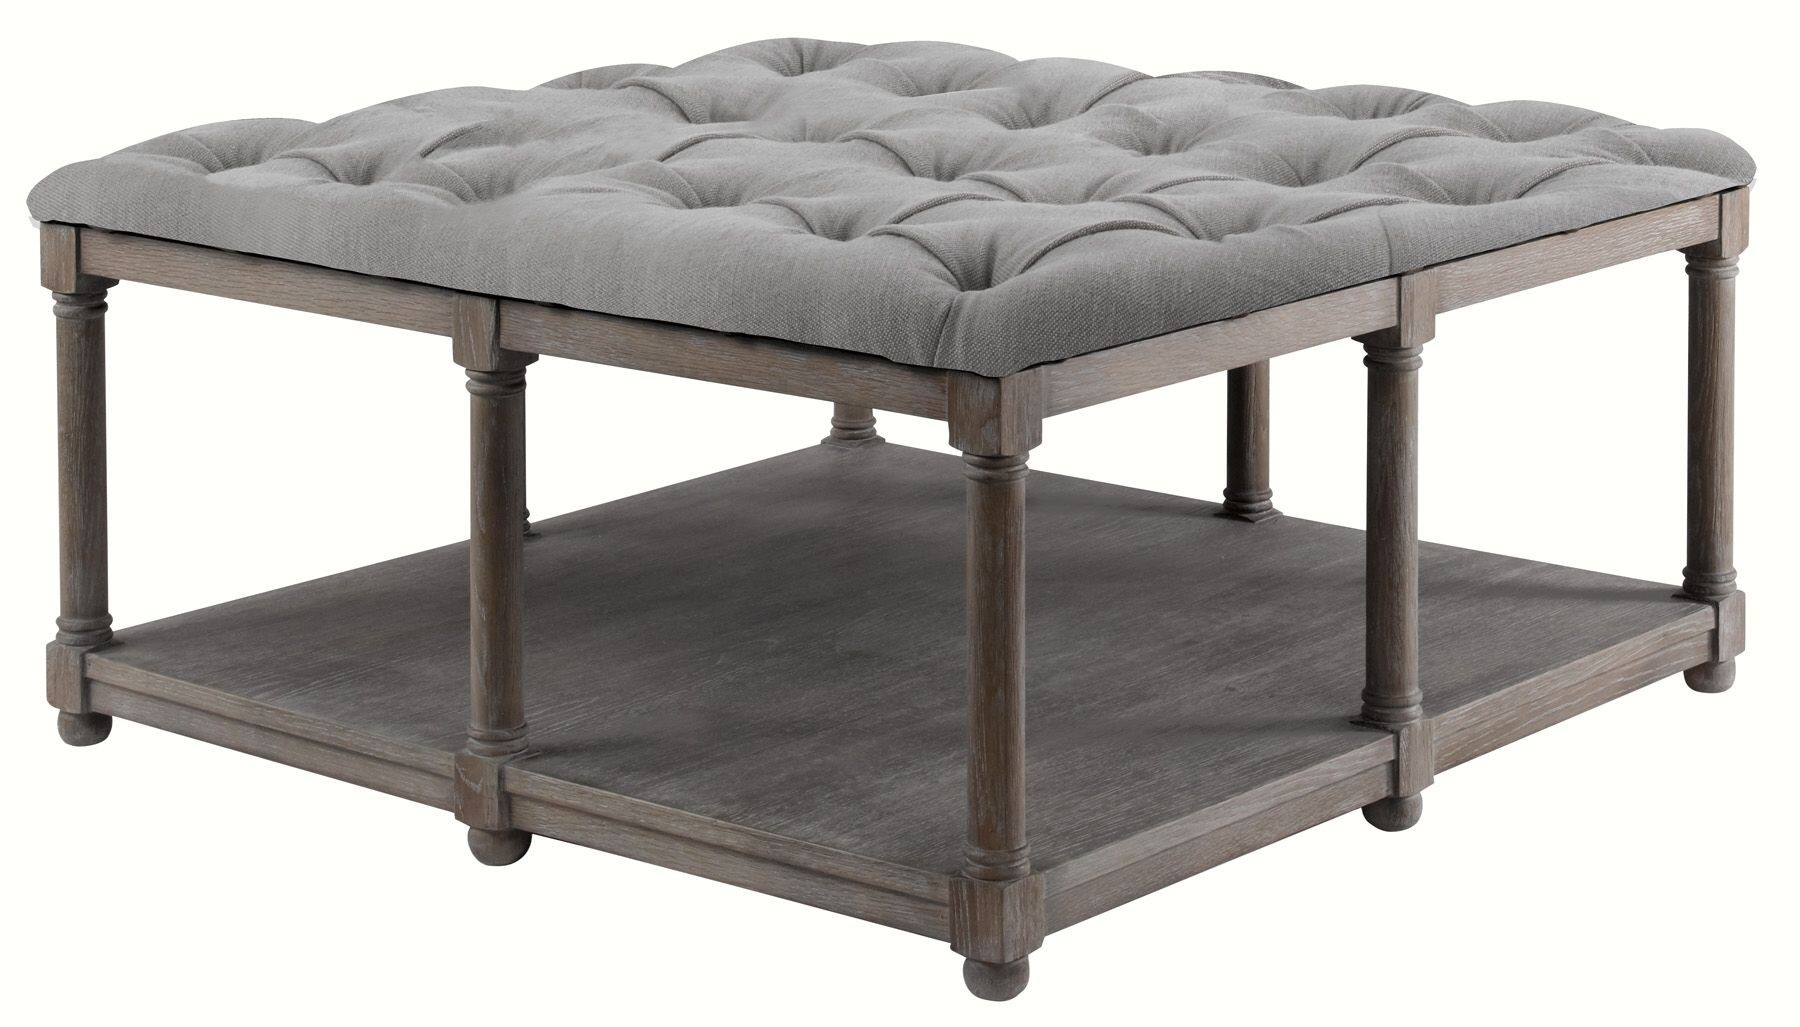 Lorraine lorraine square upholstered cocktail table from for Square cocktail table